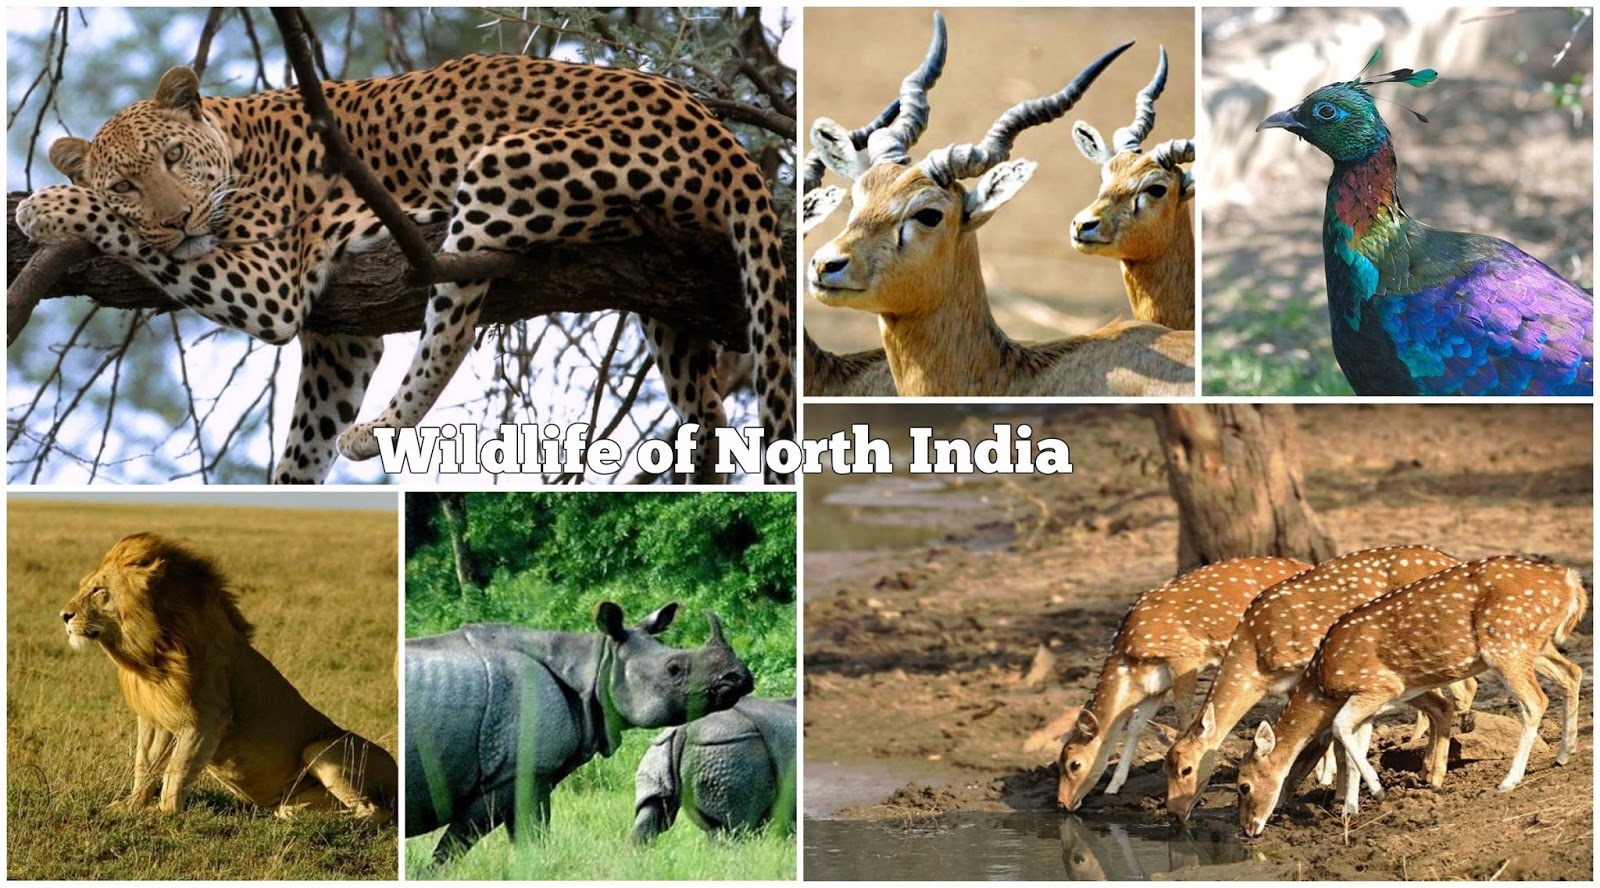 essay on kanha national park Kaziranga national park (pronounced assamese pronunciation: [kaziranga rastriya uɪddan]) is a national park in the golaghat and nagaon districts of.